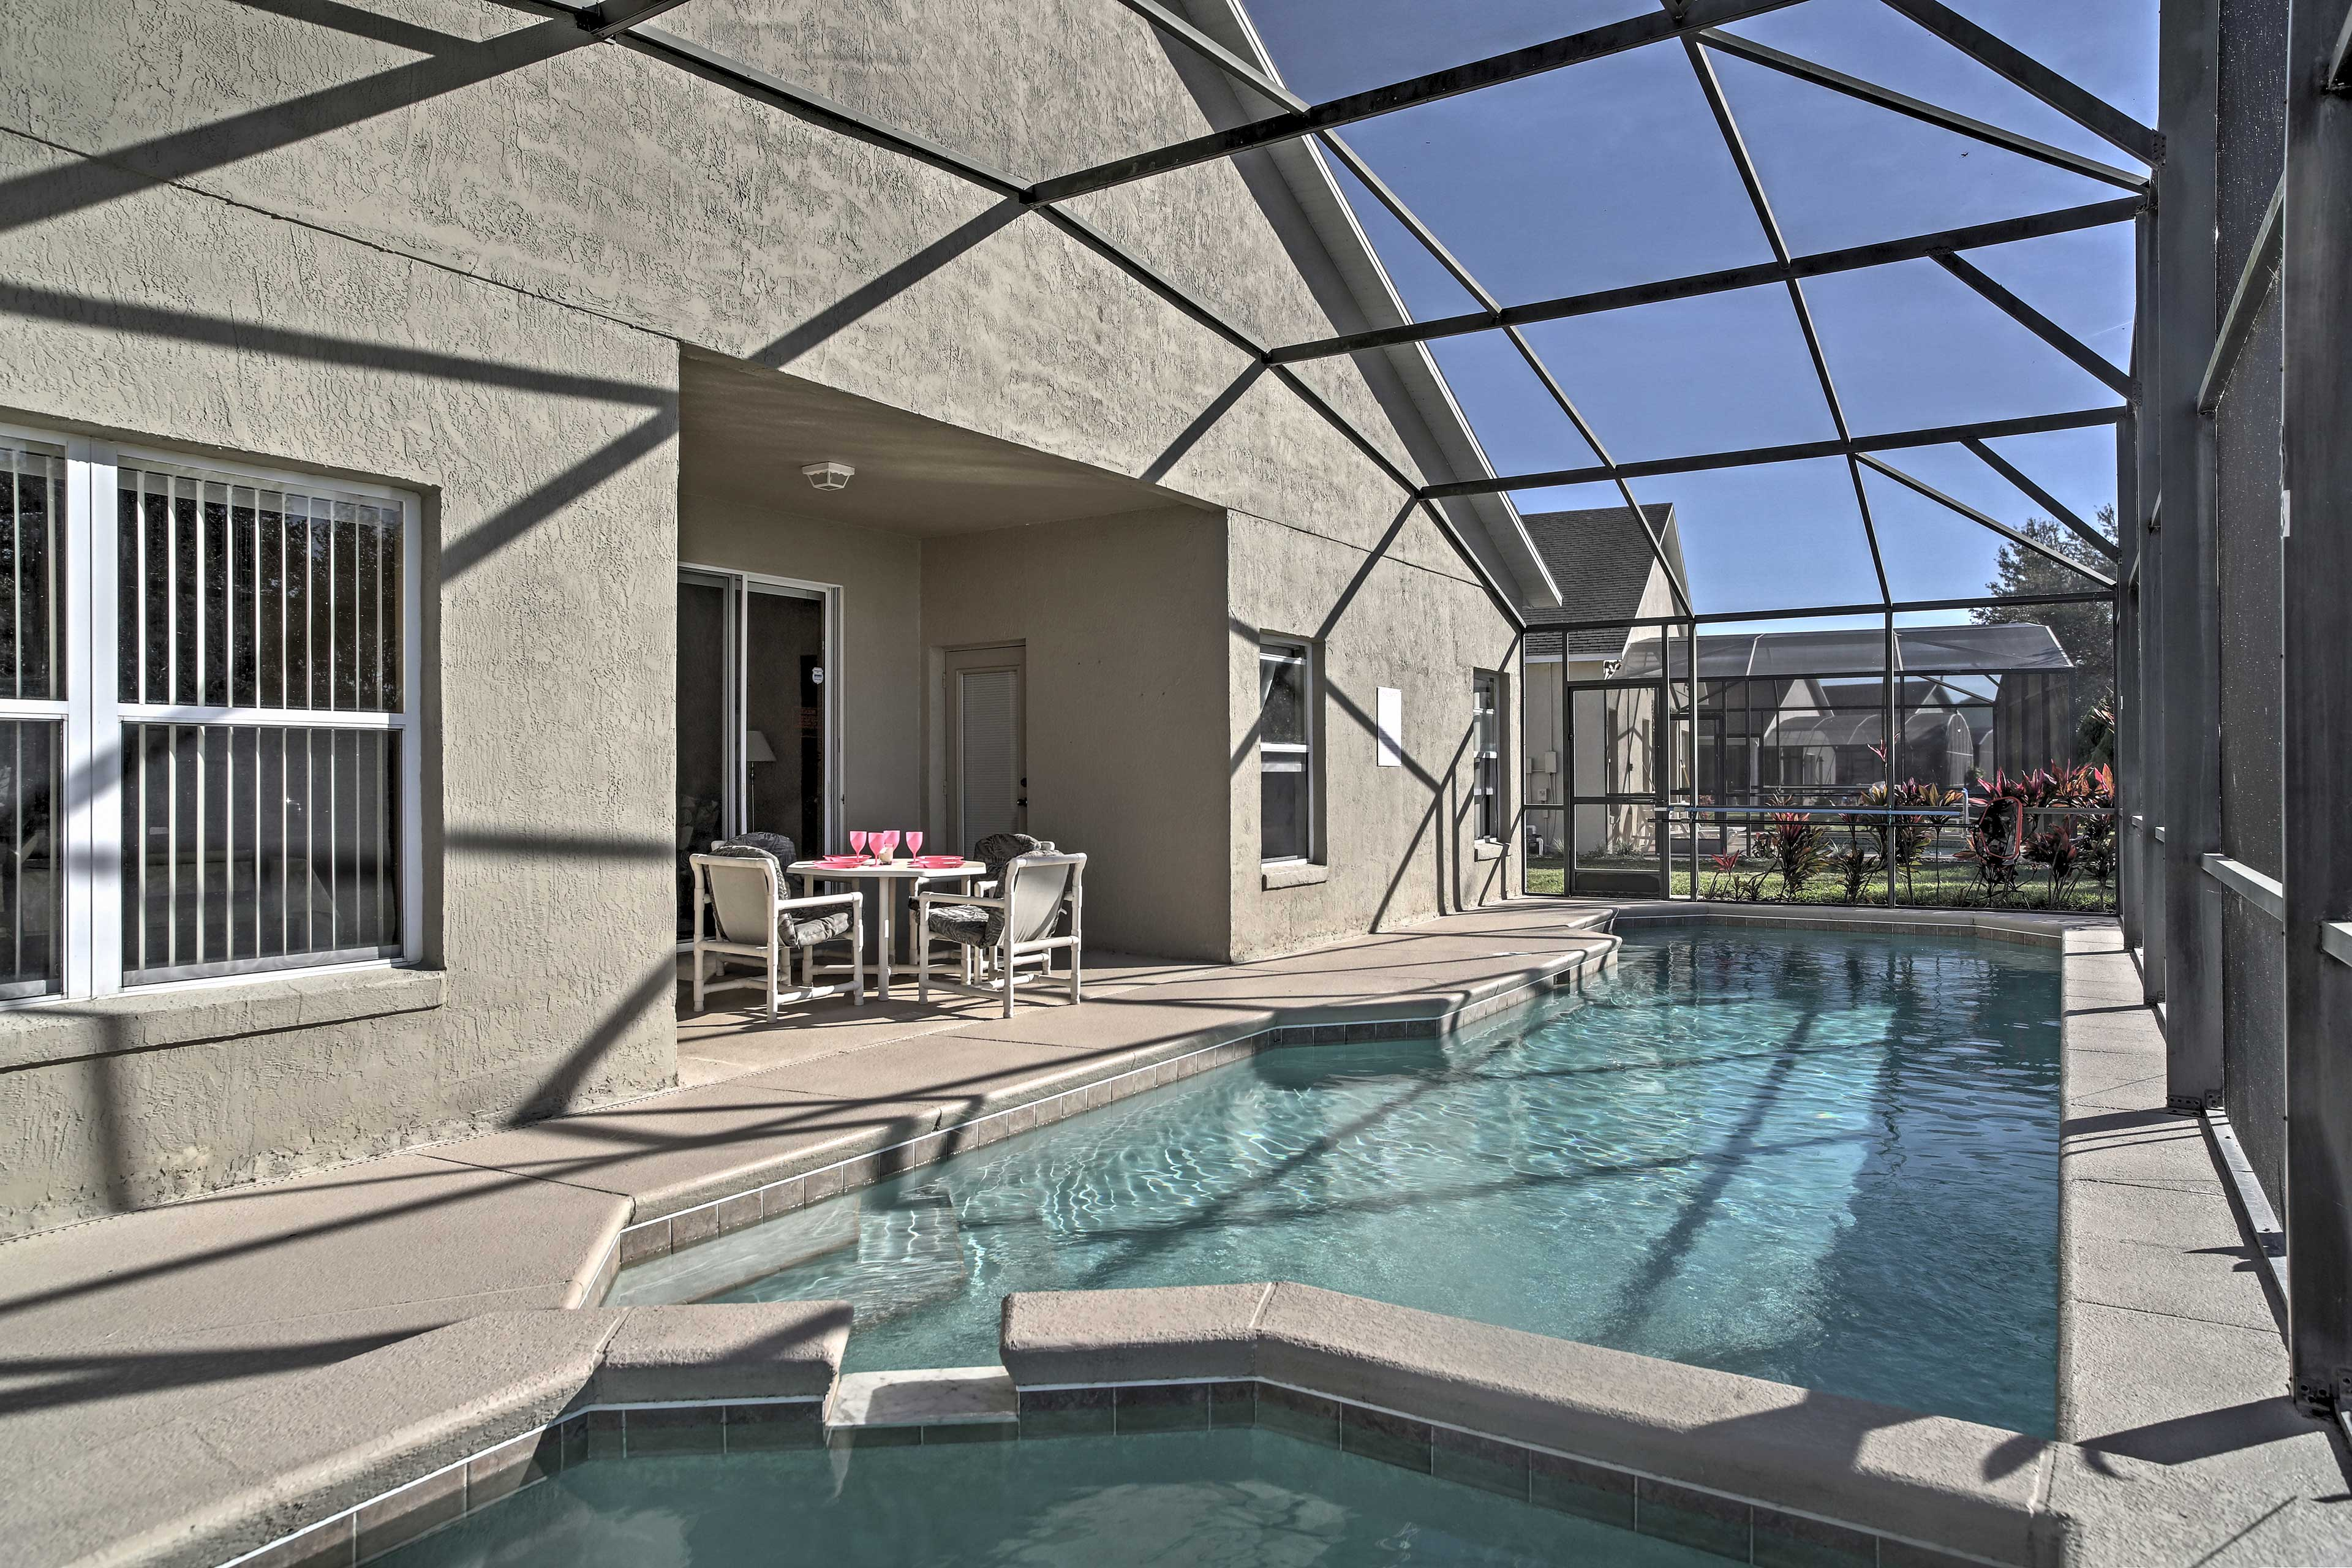 Enjoy balmy afternoons splashing around in the private screened-in pool.